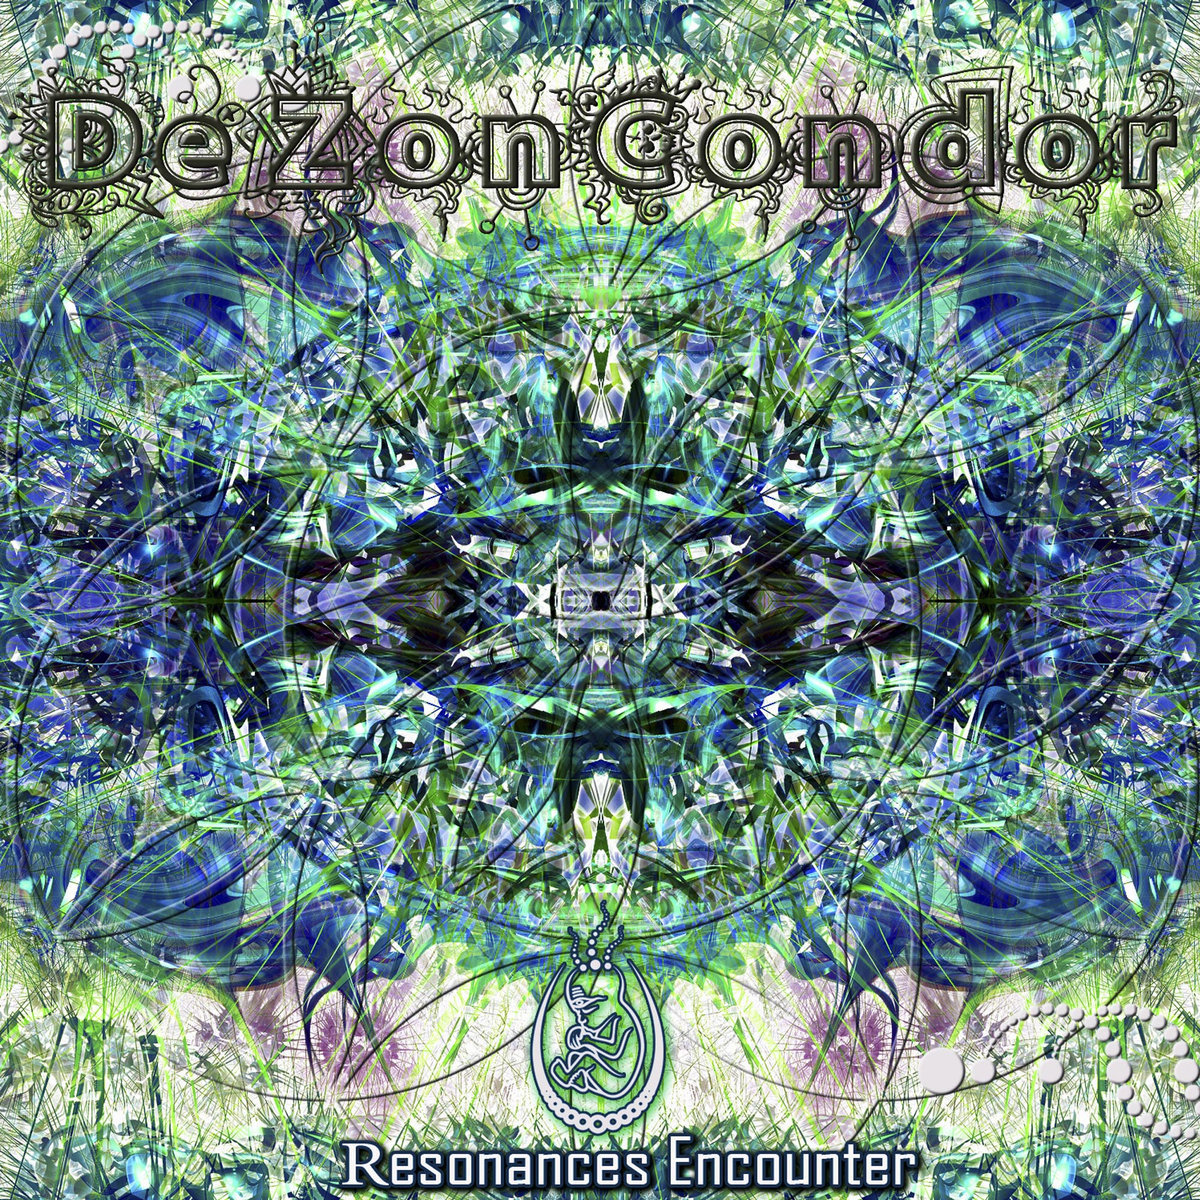 DezonCondor - Oxigen Provider @ 'Resonances Encounter' album (ambient, electronic)